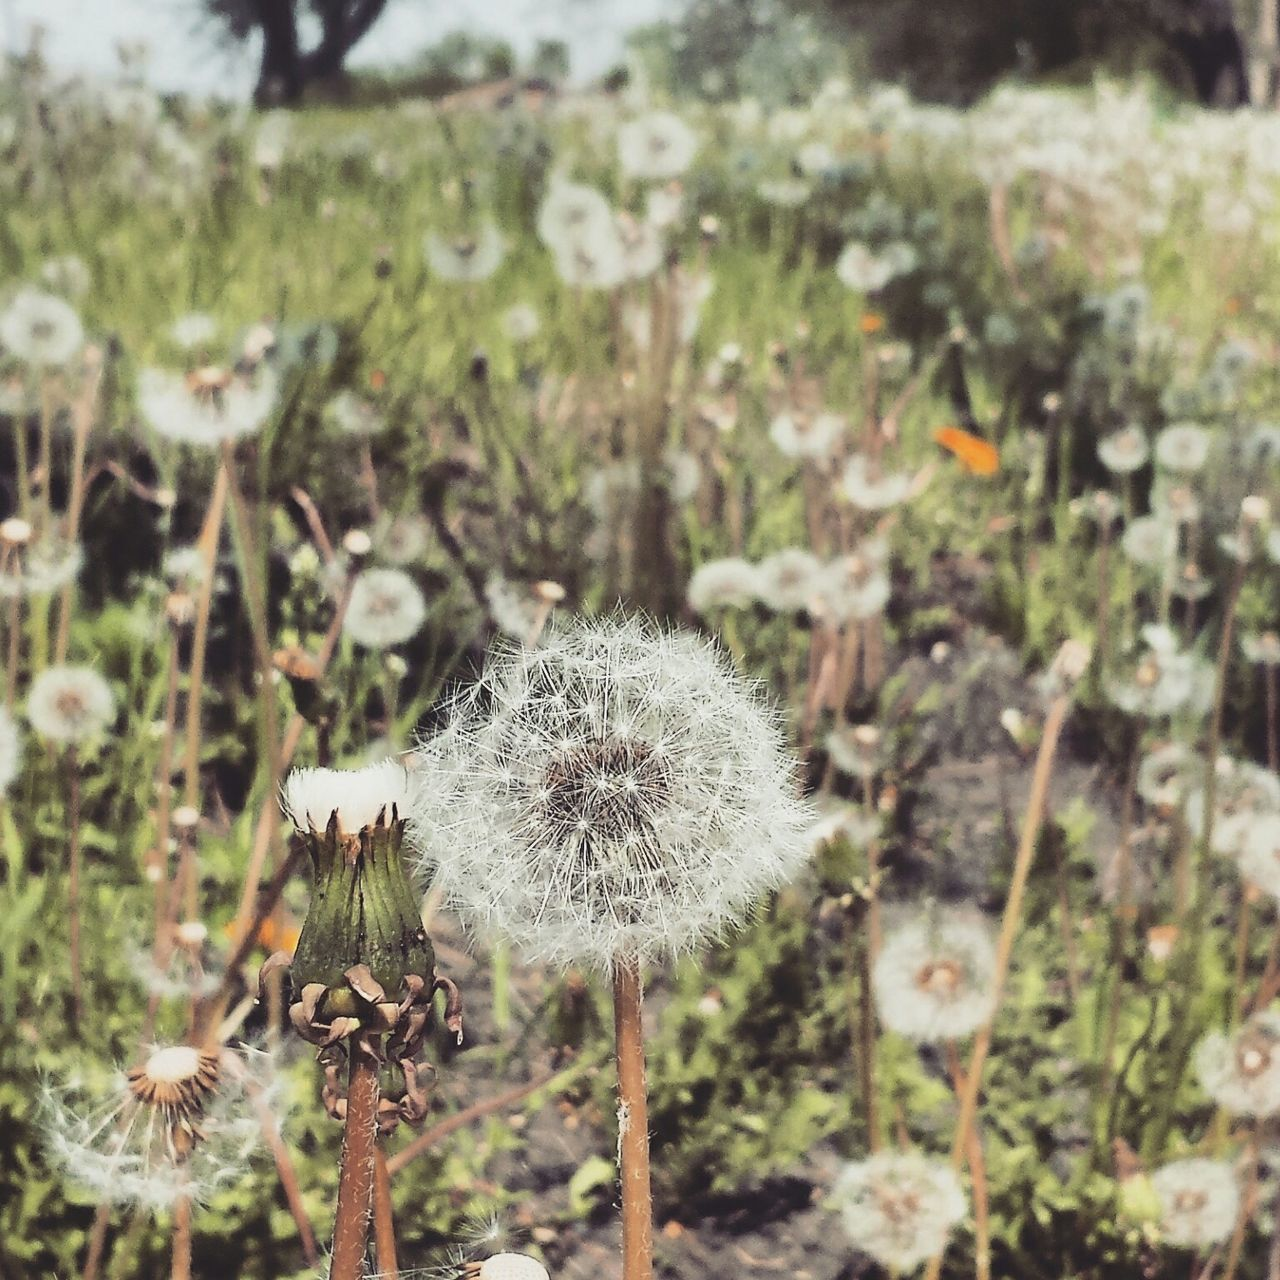 flower, dandelion, fragility, growth, nature, plant, uncultivated, flower head, softness, freshness, focus on foreground, wildflower, seed, close-up, beauty in nature, outdoors, day, no people